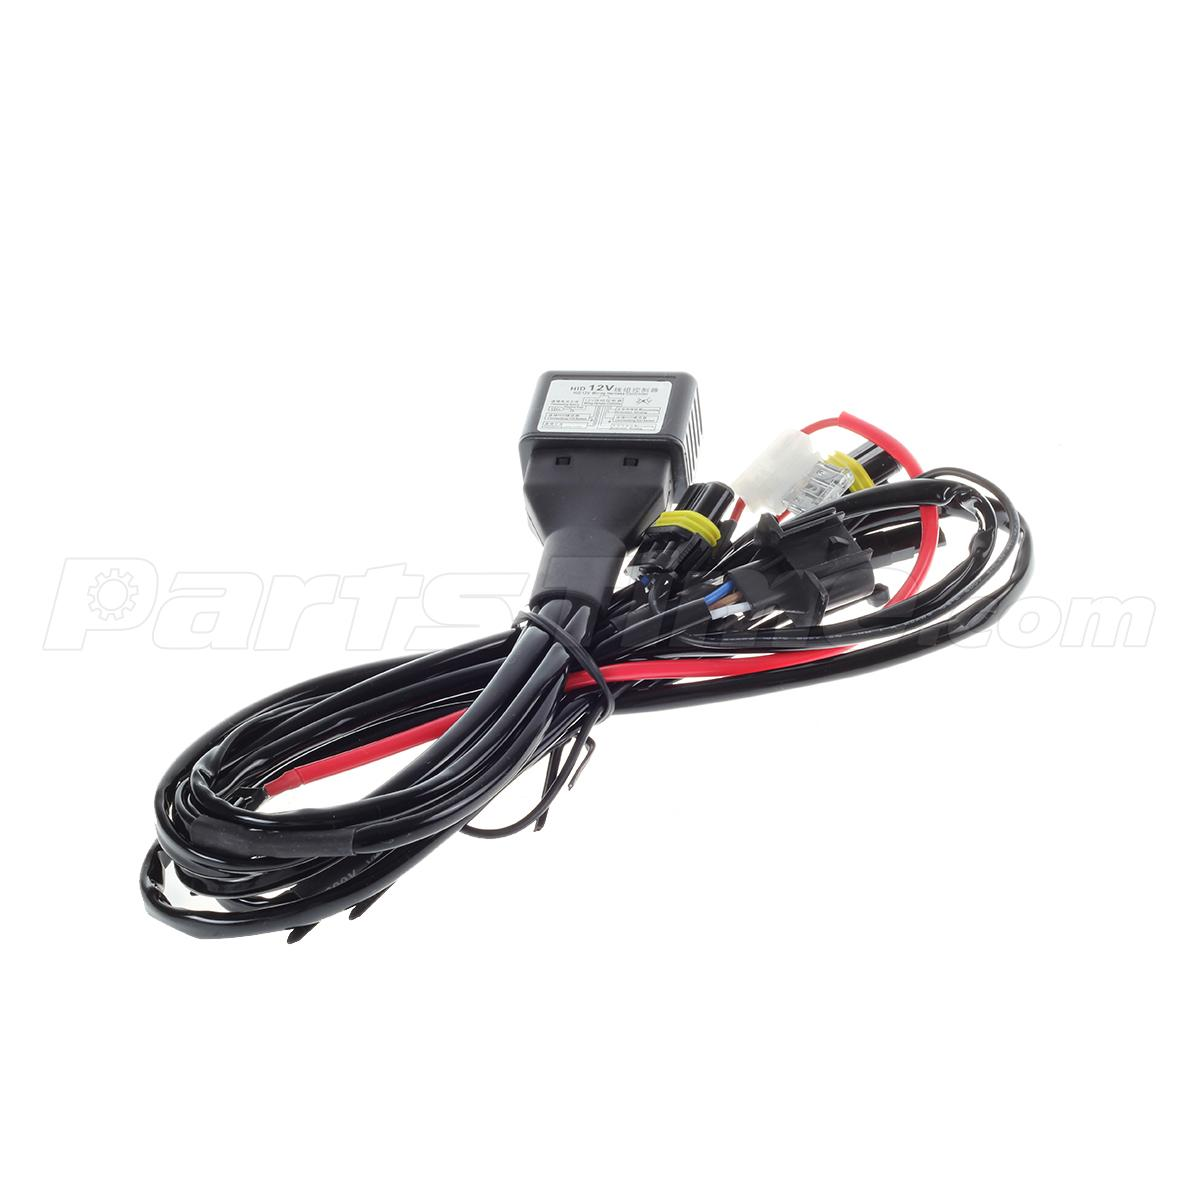 hid relay wiring harness install with 291476873854 on Honda Motorcycle Hid Headlight Wiring Diagram in addition Installation Wiring Diagram Of Motorcycle further Hid Headlights Dodge Ram Wiring Diagram further Forum posts furthermore H4 Hid Wiring Diagram.